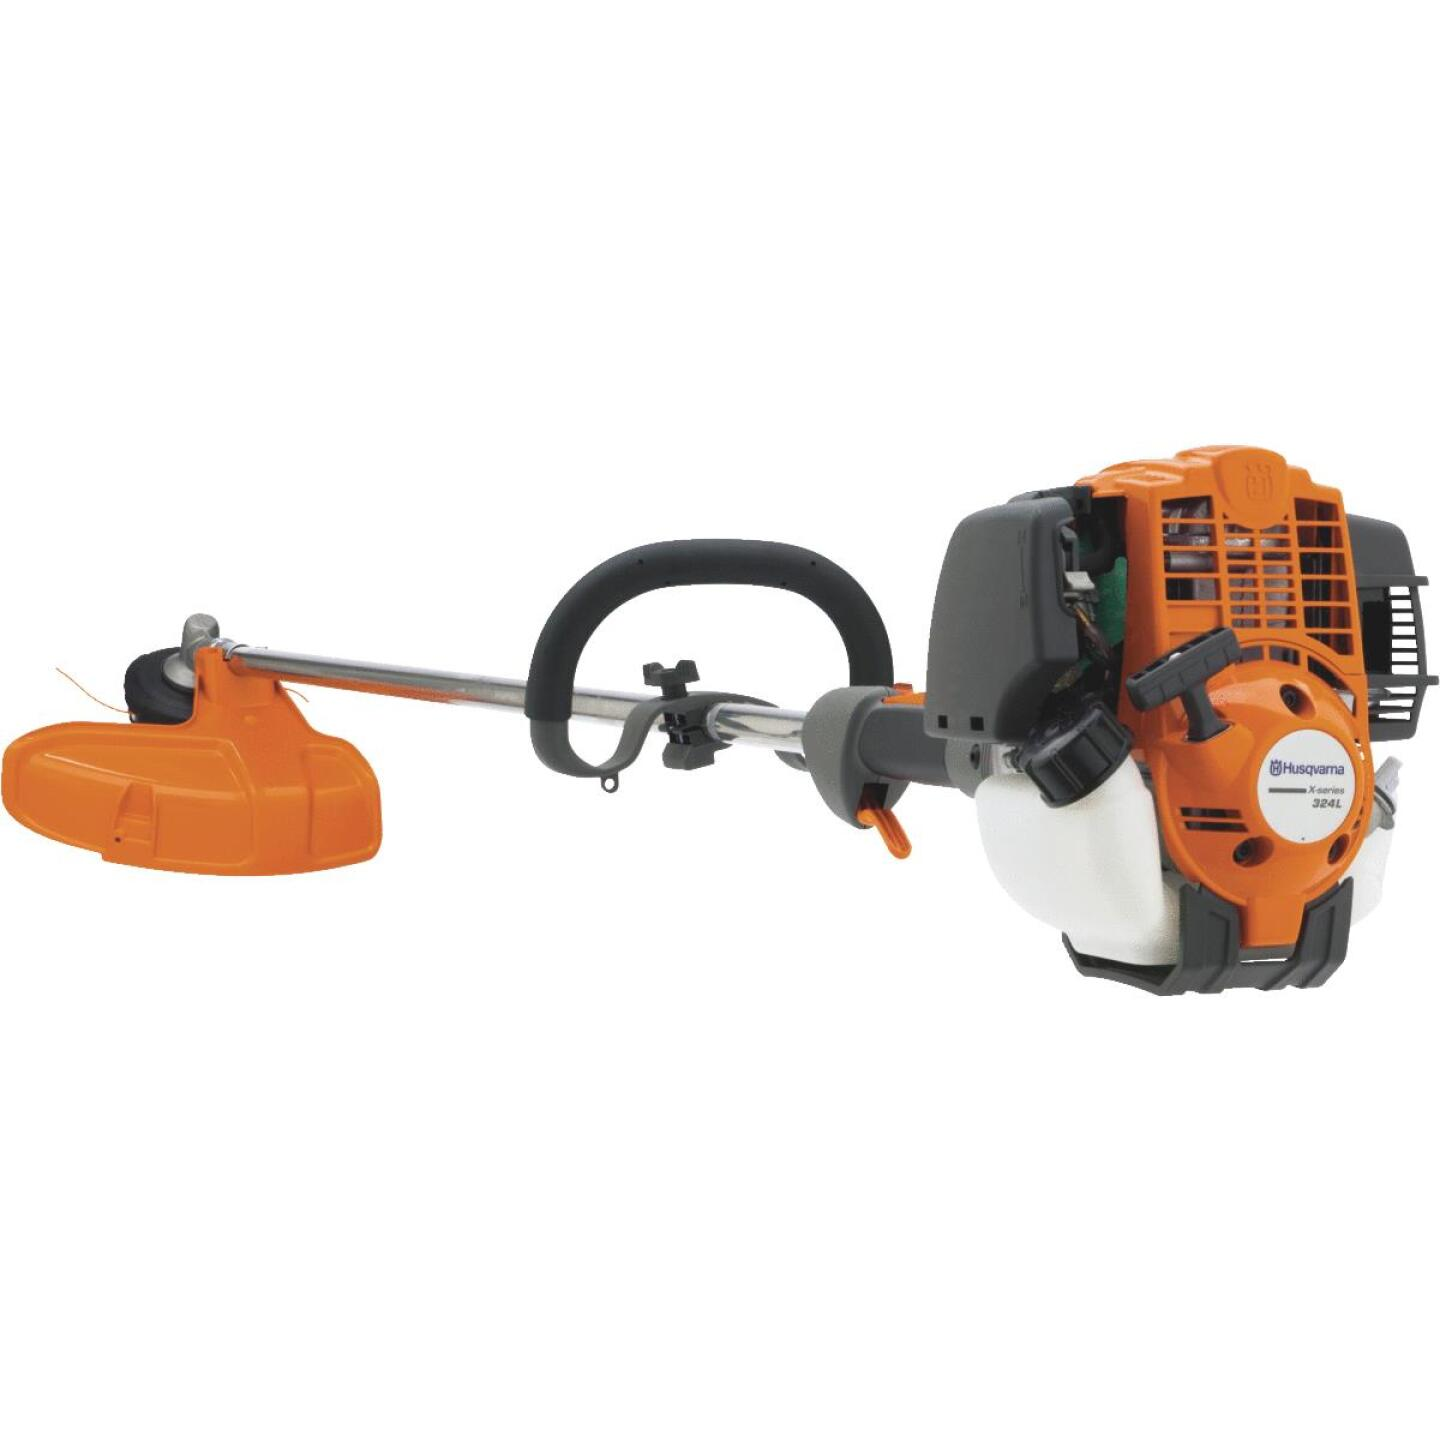 Husqvarna 324L 17 In. 25CC 4-Cycle Straight Gas String Trimmer Image 1